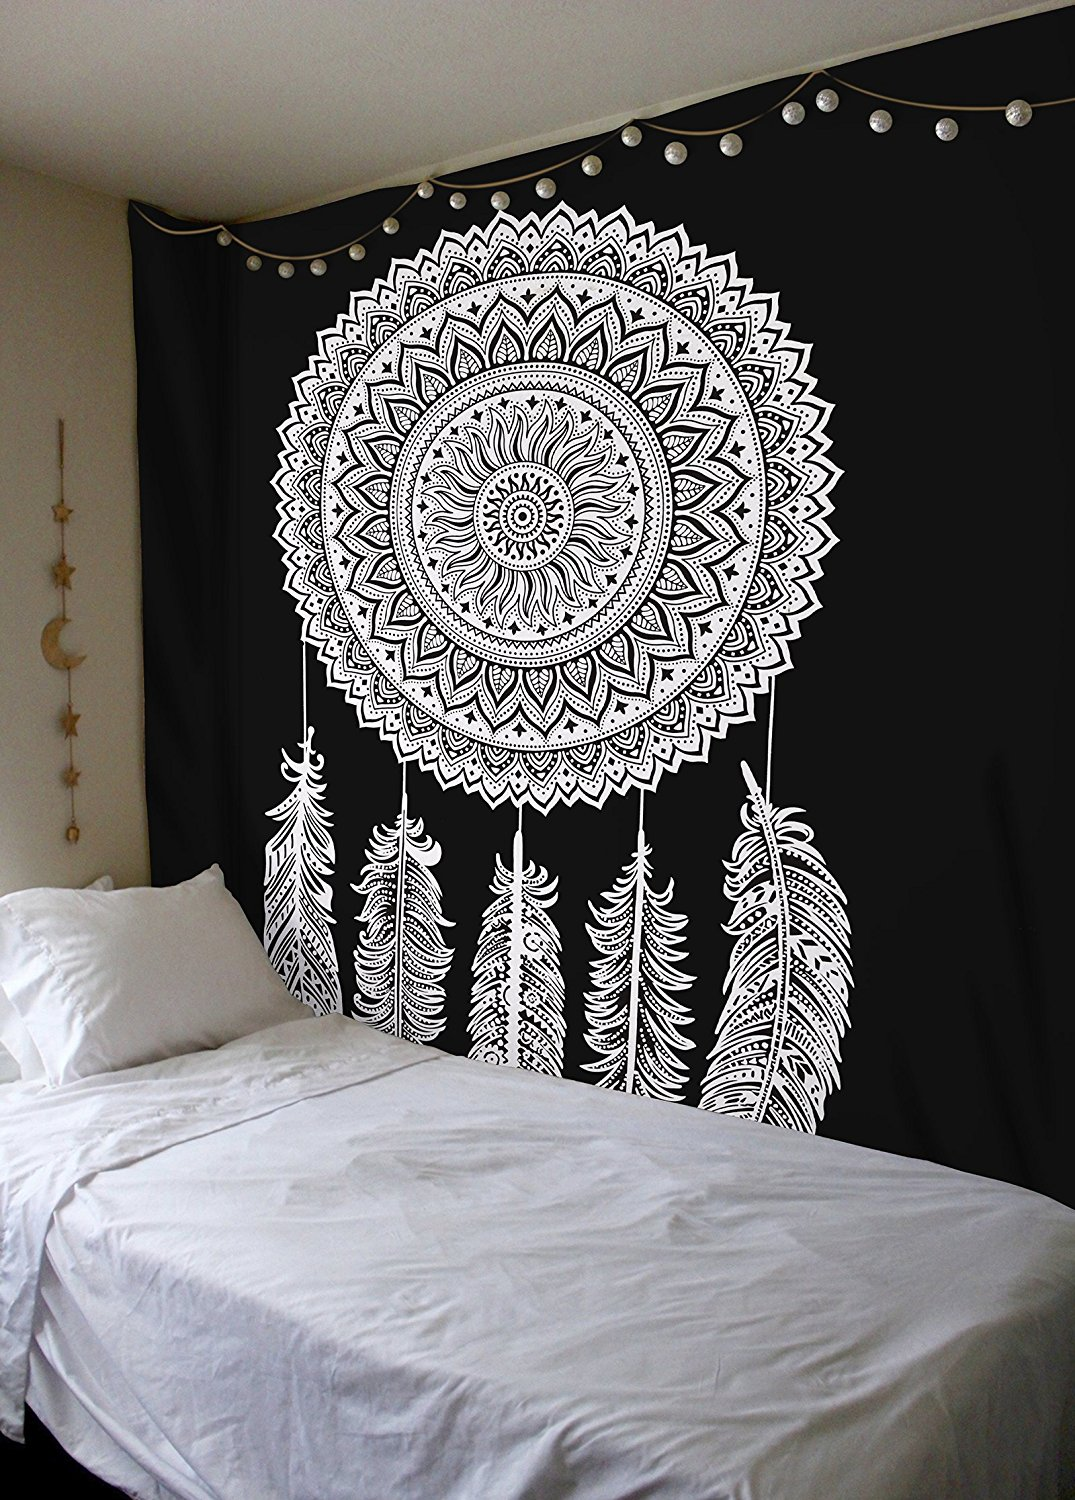 Seafoam Green Home Decor Queen Black Amp White Dream Catcher Mandala Wall Hanging